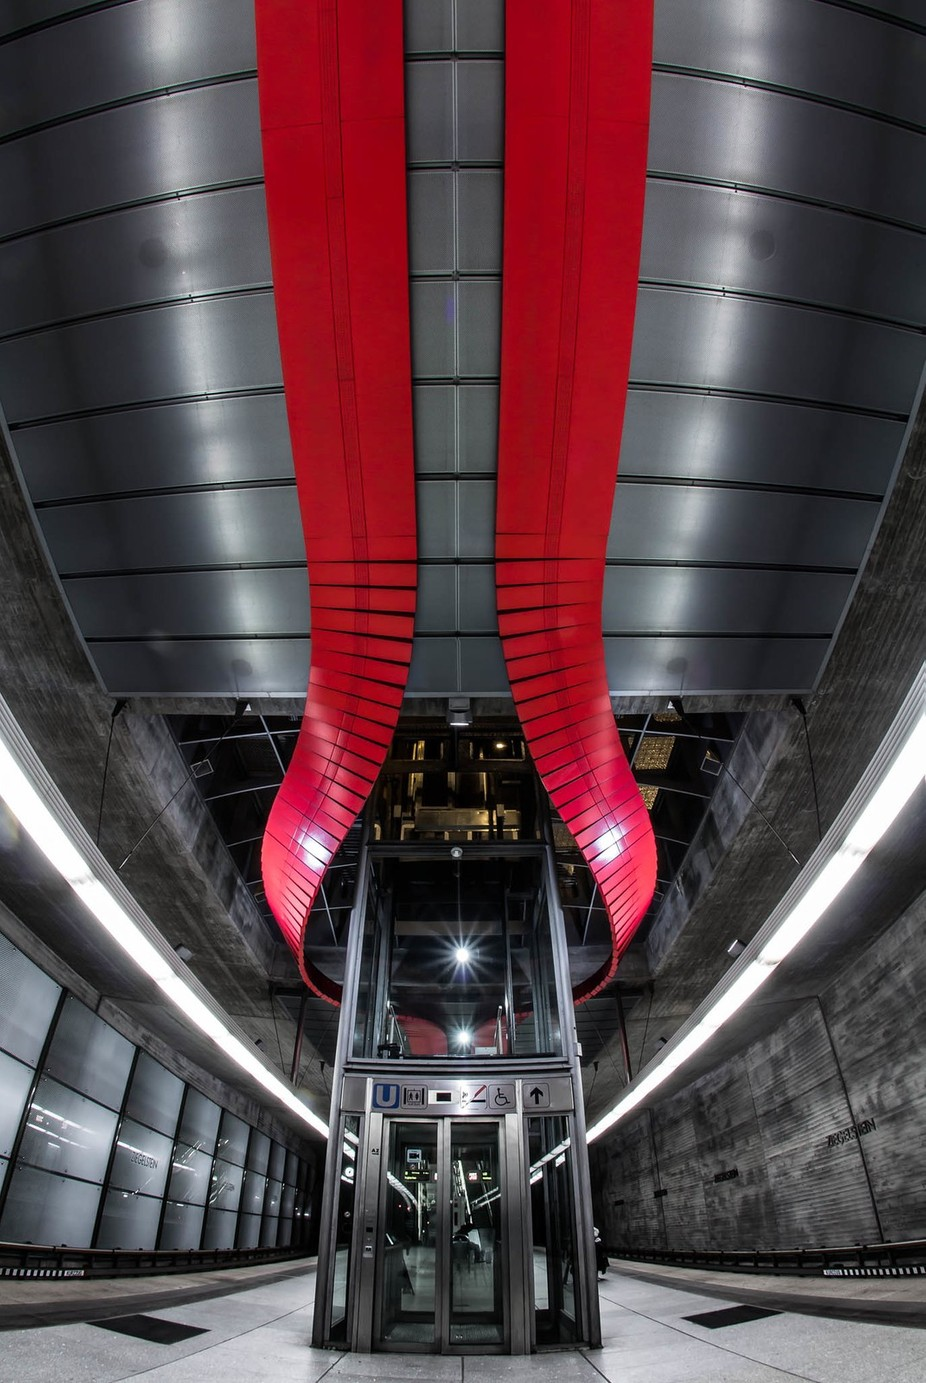 Ziegelstein Station by matayosoixantequatorze - Metro Stations Photo Contest